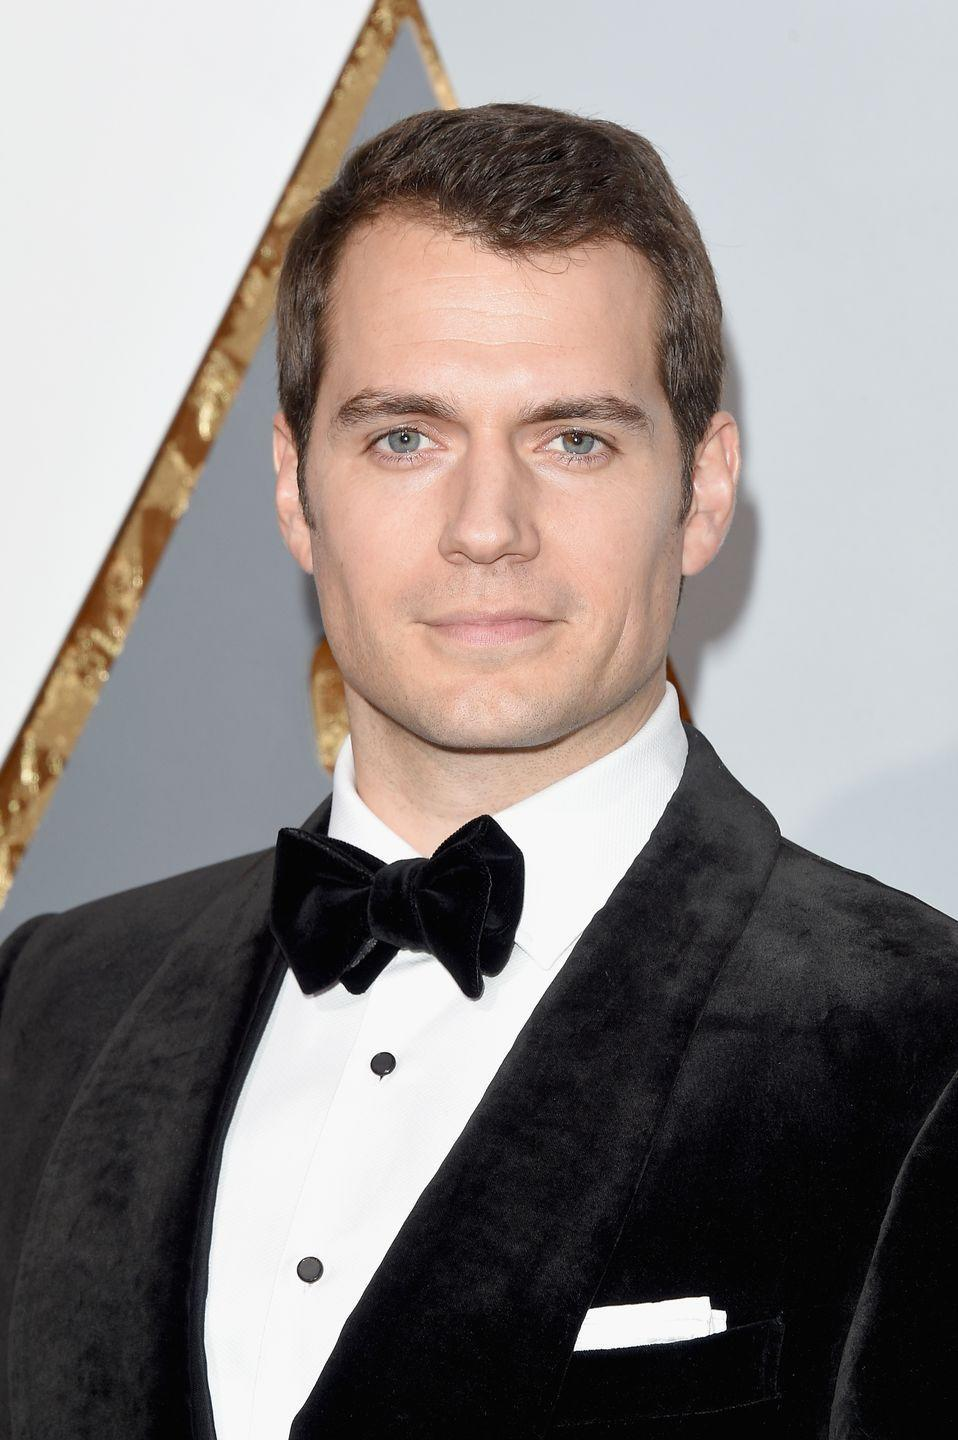 """<p>Hear us out: <a href=""""https://www.menshealth.com/entertainment/a29774618/henry-cavill-the-witcher-superman-interview/"""" rel=""""nofollow noopener"""" target=""""_blank"""" data-ylk=""""slk:Henry Cavill"""" class=""""link rapid-noclick-resp"""">Henry Cavill</a> could become the first truly funny James Bond. While his Man of Steel and Witcher roles tend to be lots of grunts and muscle, you can find Cavill's impeccable comedic timing in The Man from U.N.C.L.E., and his home videos, showing him troubleshoot as he <a href=""""https://www.menshealth.com/entertainment/a33339924/henry-cavill-builds-computer/"""" rel=""""nofollow noopener"""" target=""""_blank"""" data-ylk=""""slk:sets up a brand-new gaming PC"""" class=""""link rapid-noclick-resp"""">sets up a brand-new gaming PC</a>. </p><p>Sure, Cavill would be something of a regressive Bond—back to the traditional good looks and neat hair of the past—but he could also be a more self-aware Bond, goofier, more of a lampoon of nationalism than simply an undisguised celebration of it. We don't think the franchise will go in this direction, but we can always dream. In the meantime, give us another U.N.C.L.E. movie, Hollywood. —JSC</p>"""